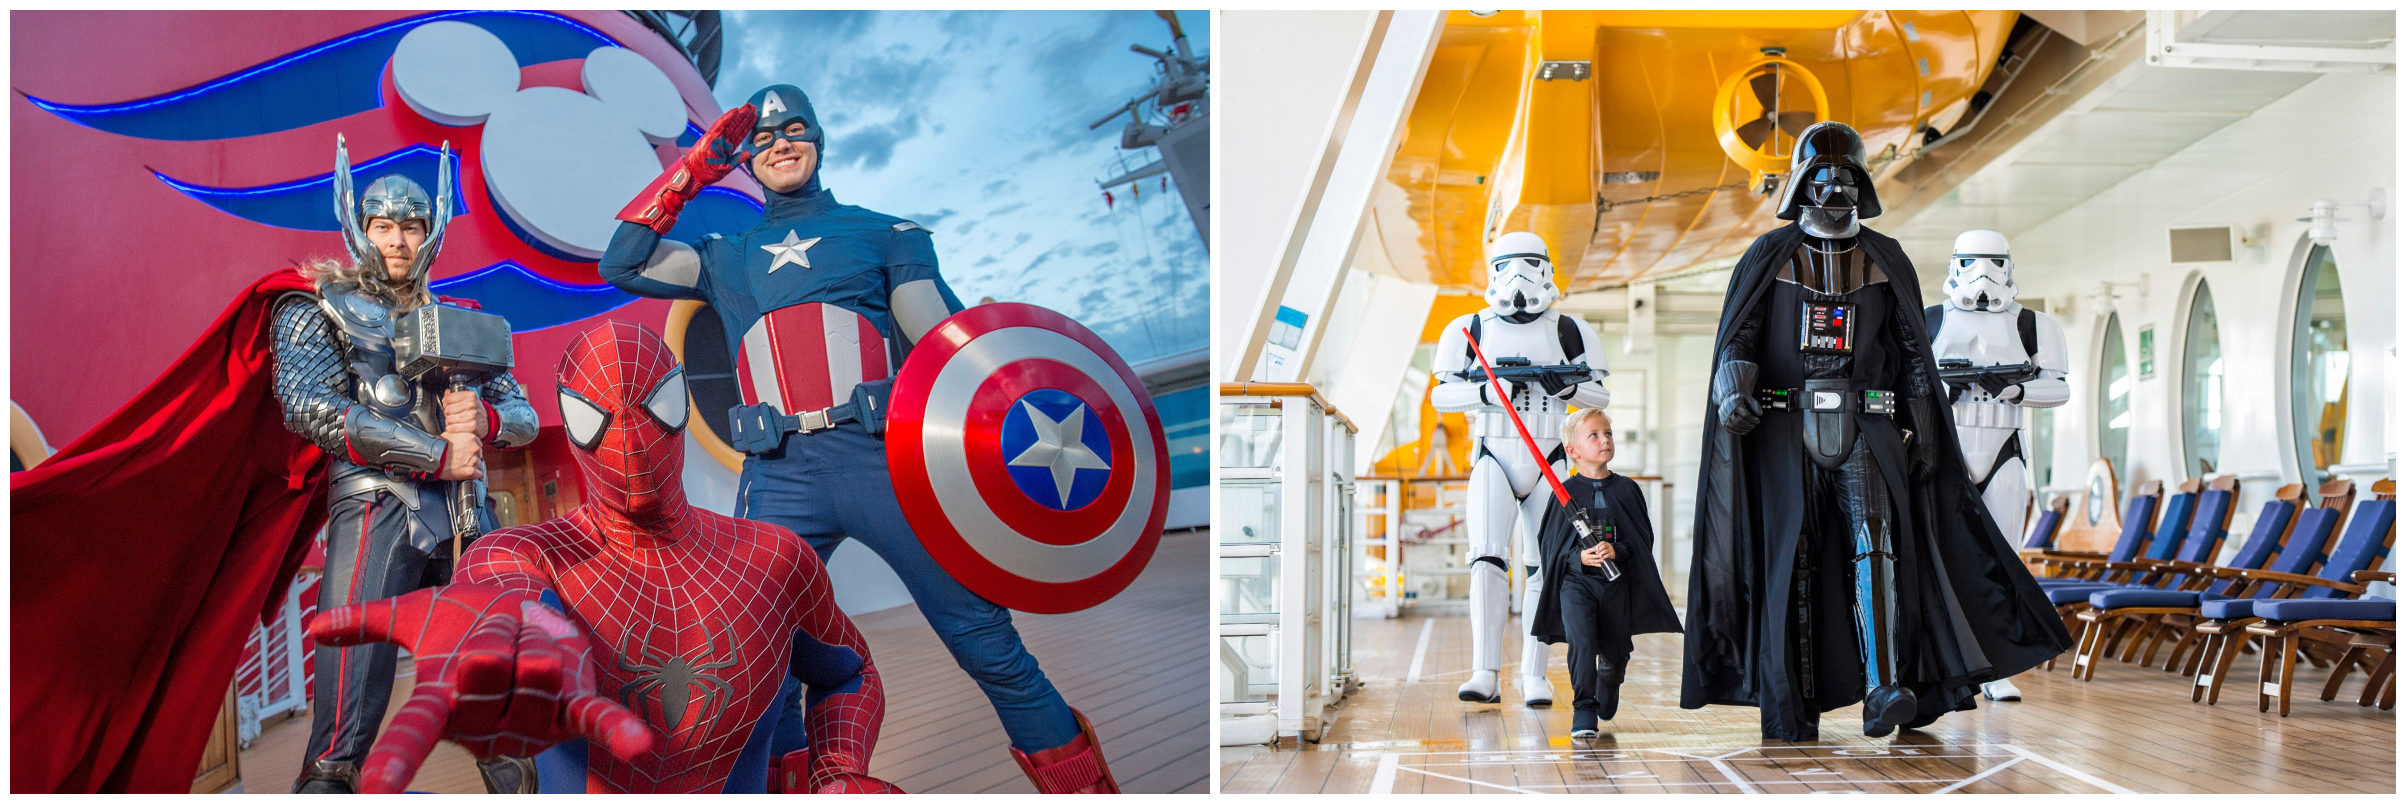 Star Wars and Marvel characters posing